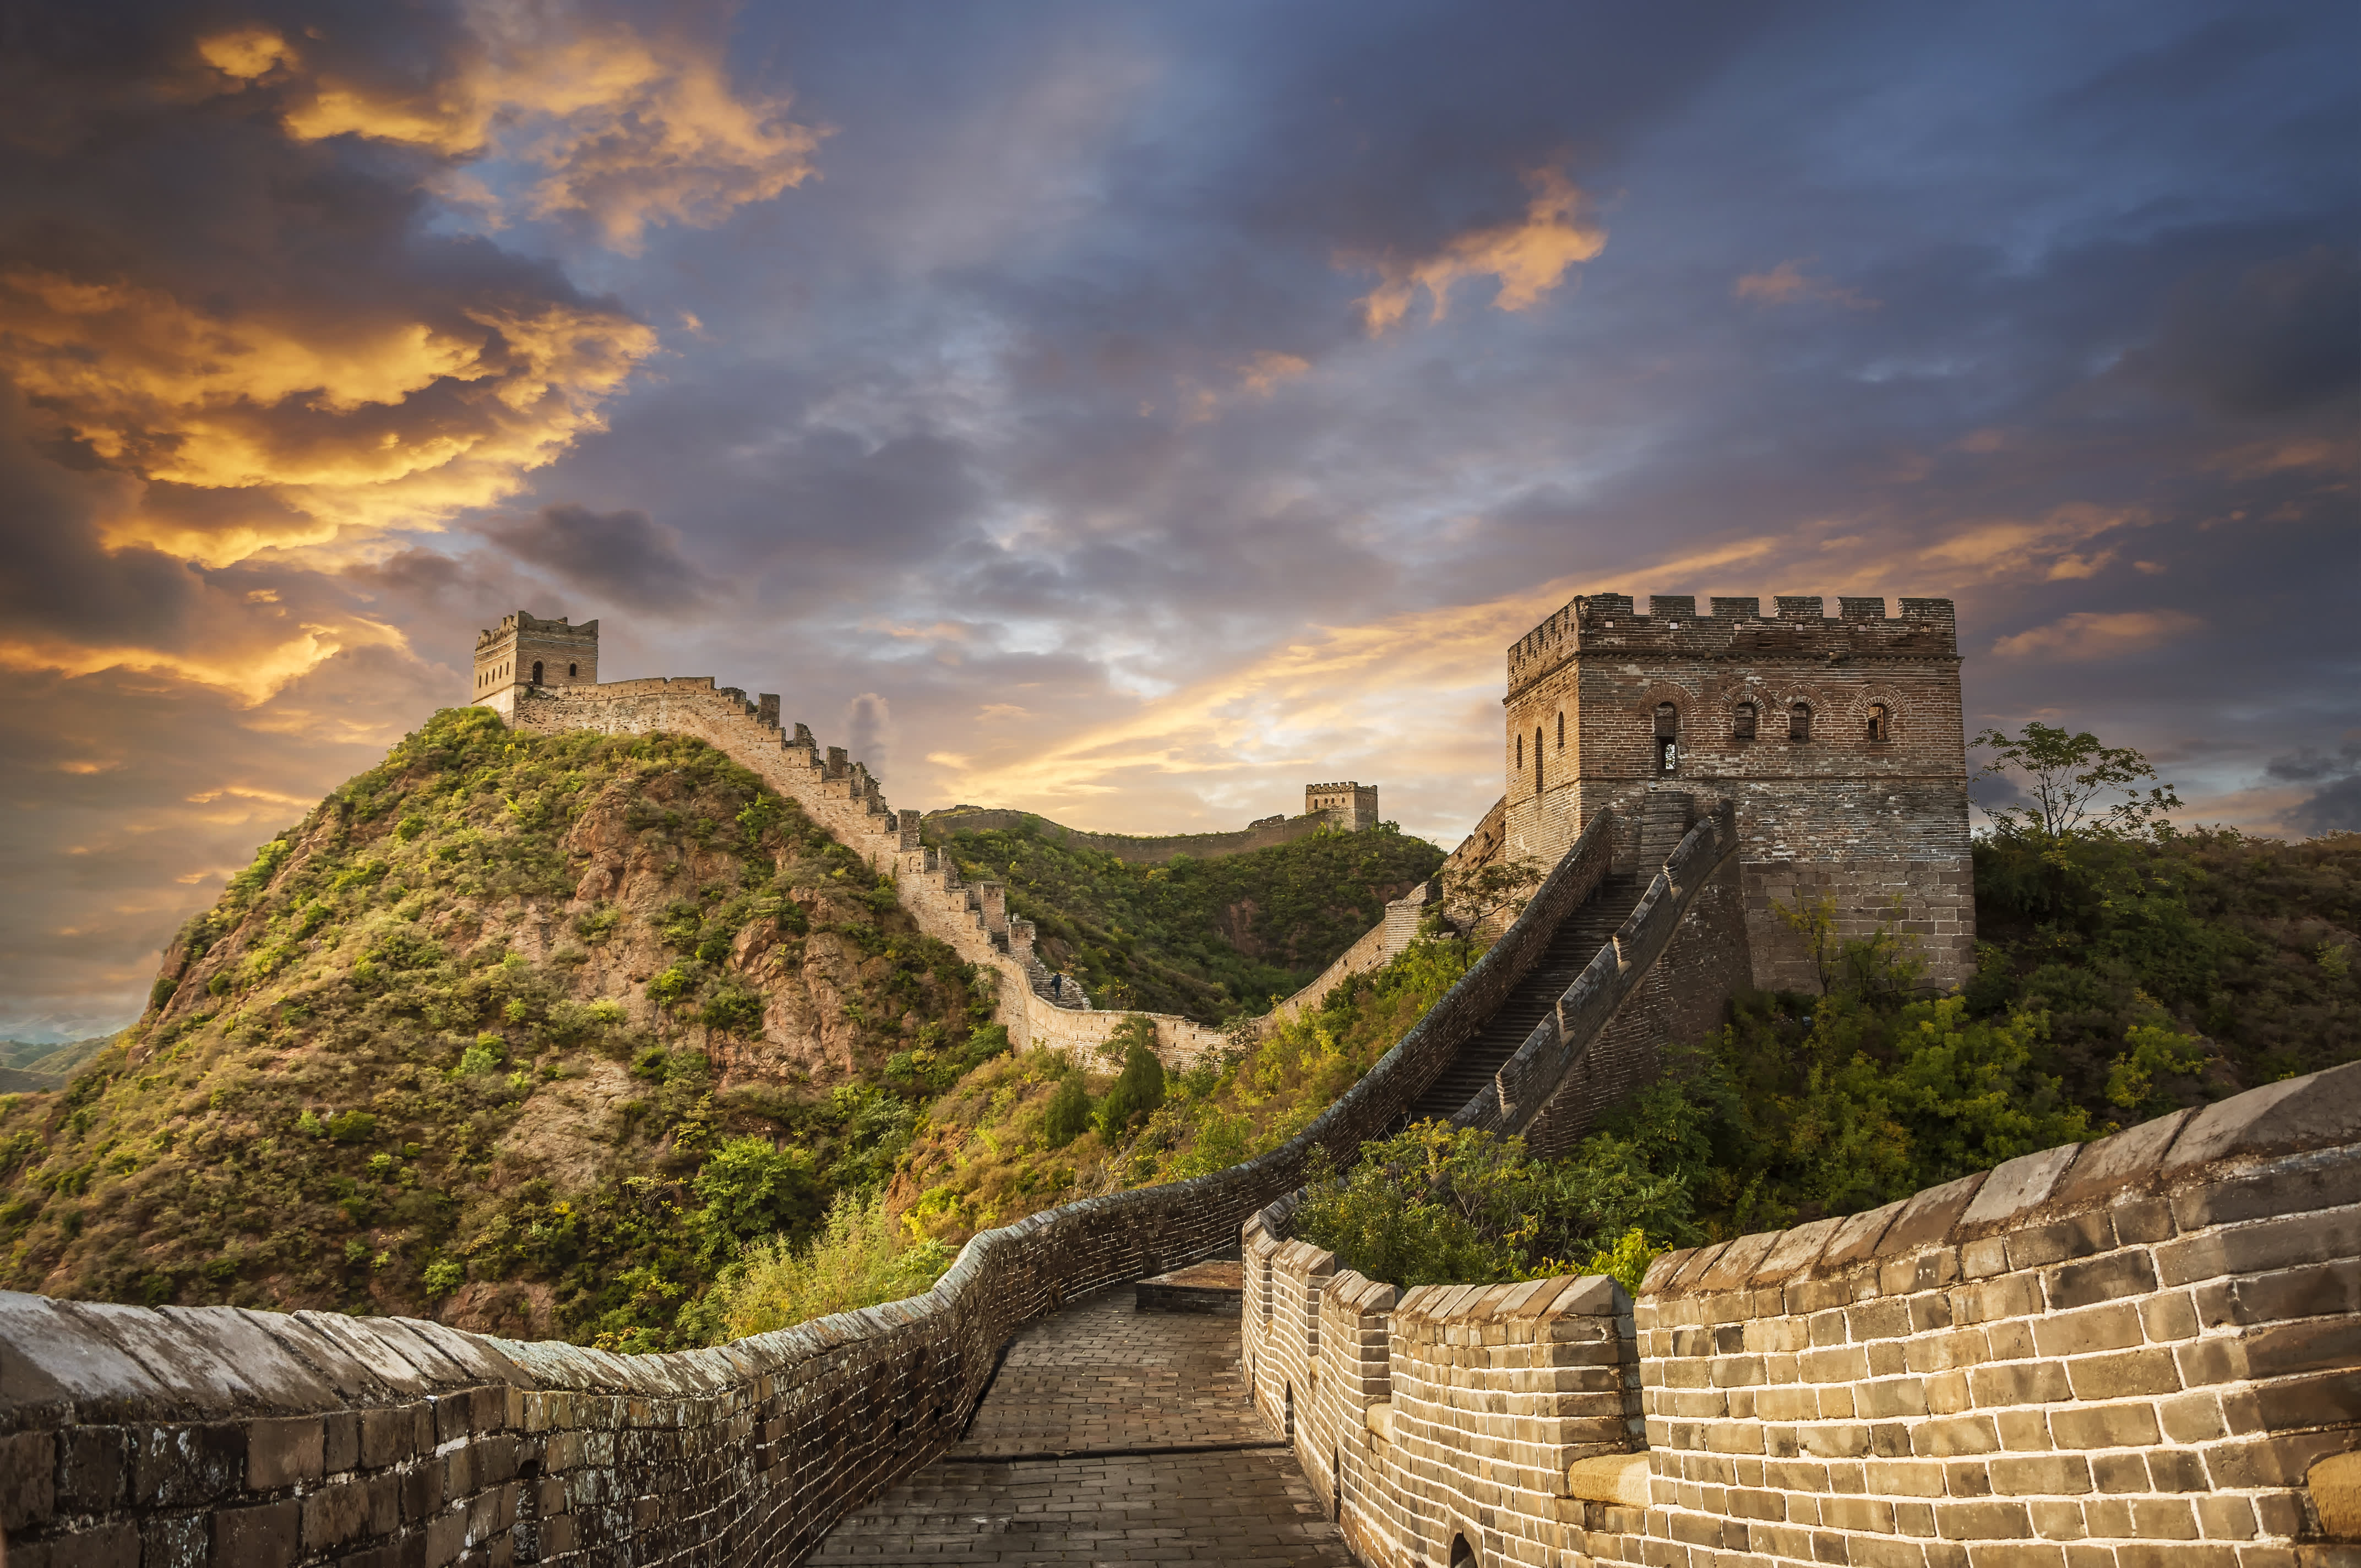 The Great Wall of China: 4 ideas for day trips — and 1 to avoid altogether